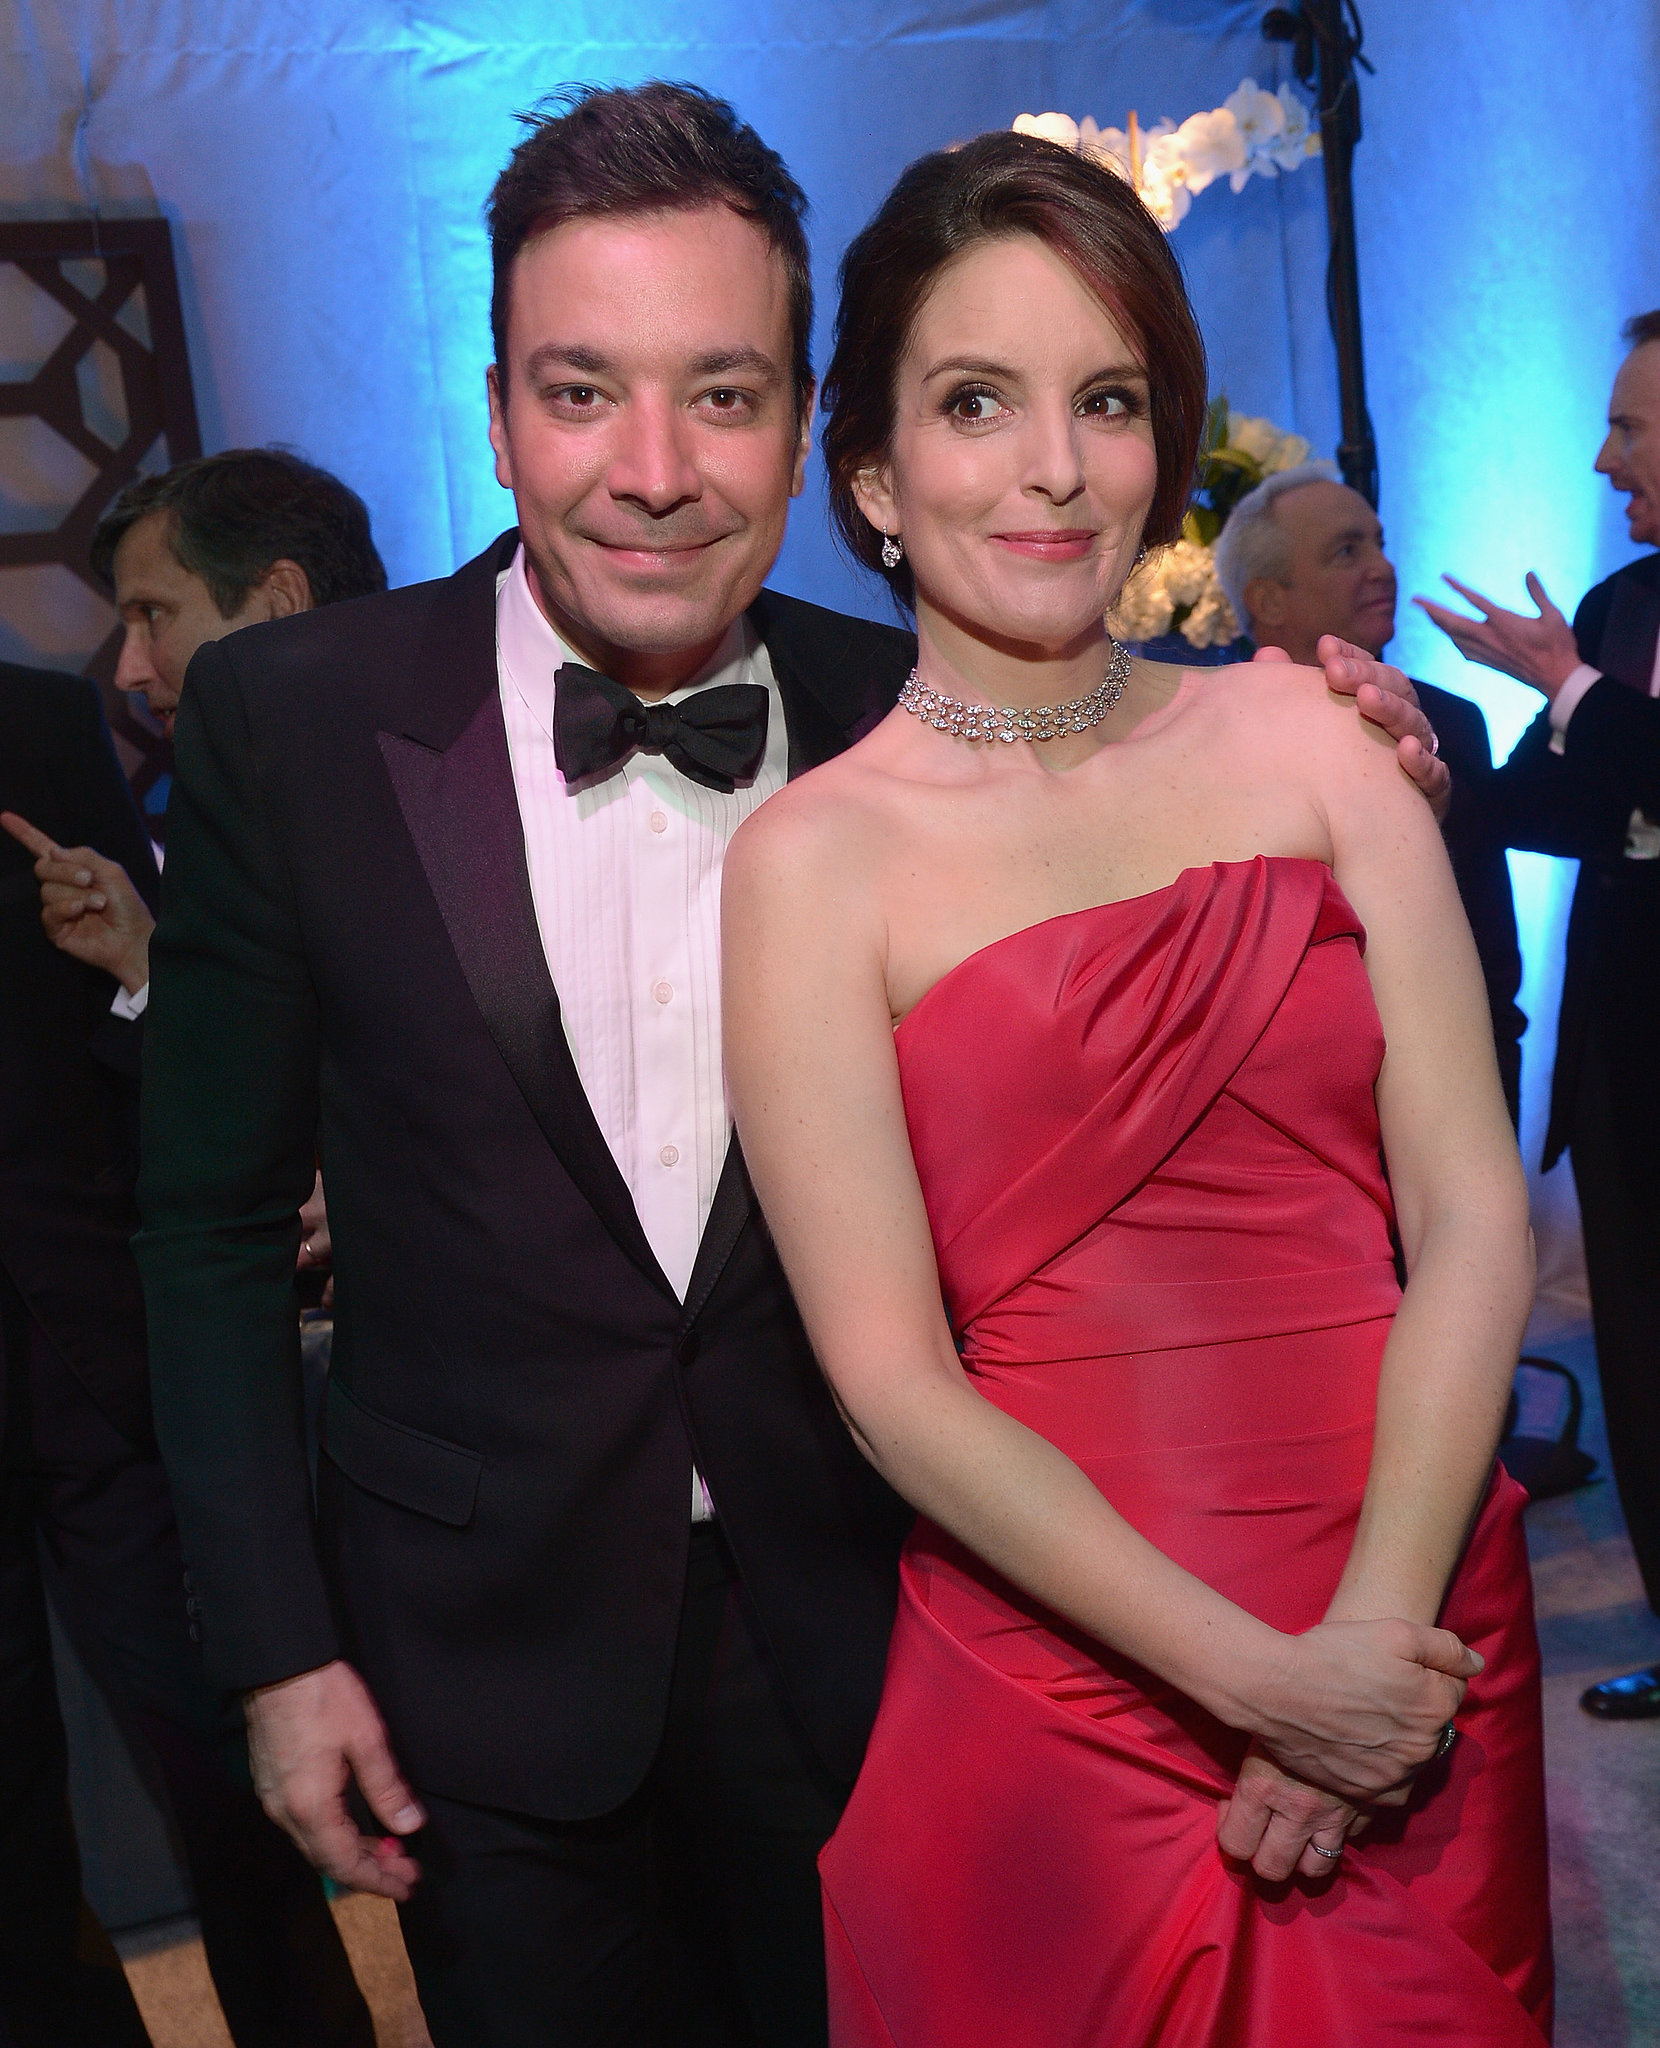 Tina Fey caught up with her pal Jimmy Fallon at the NBC party.